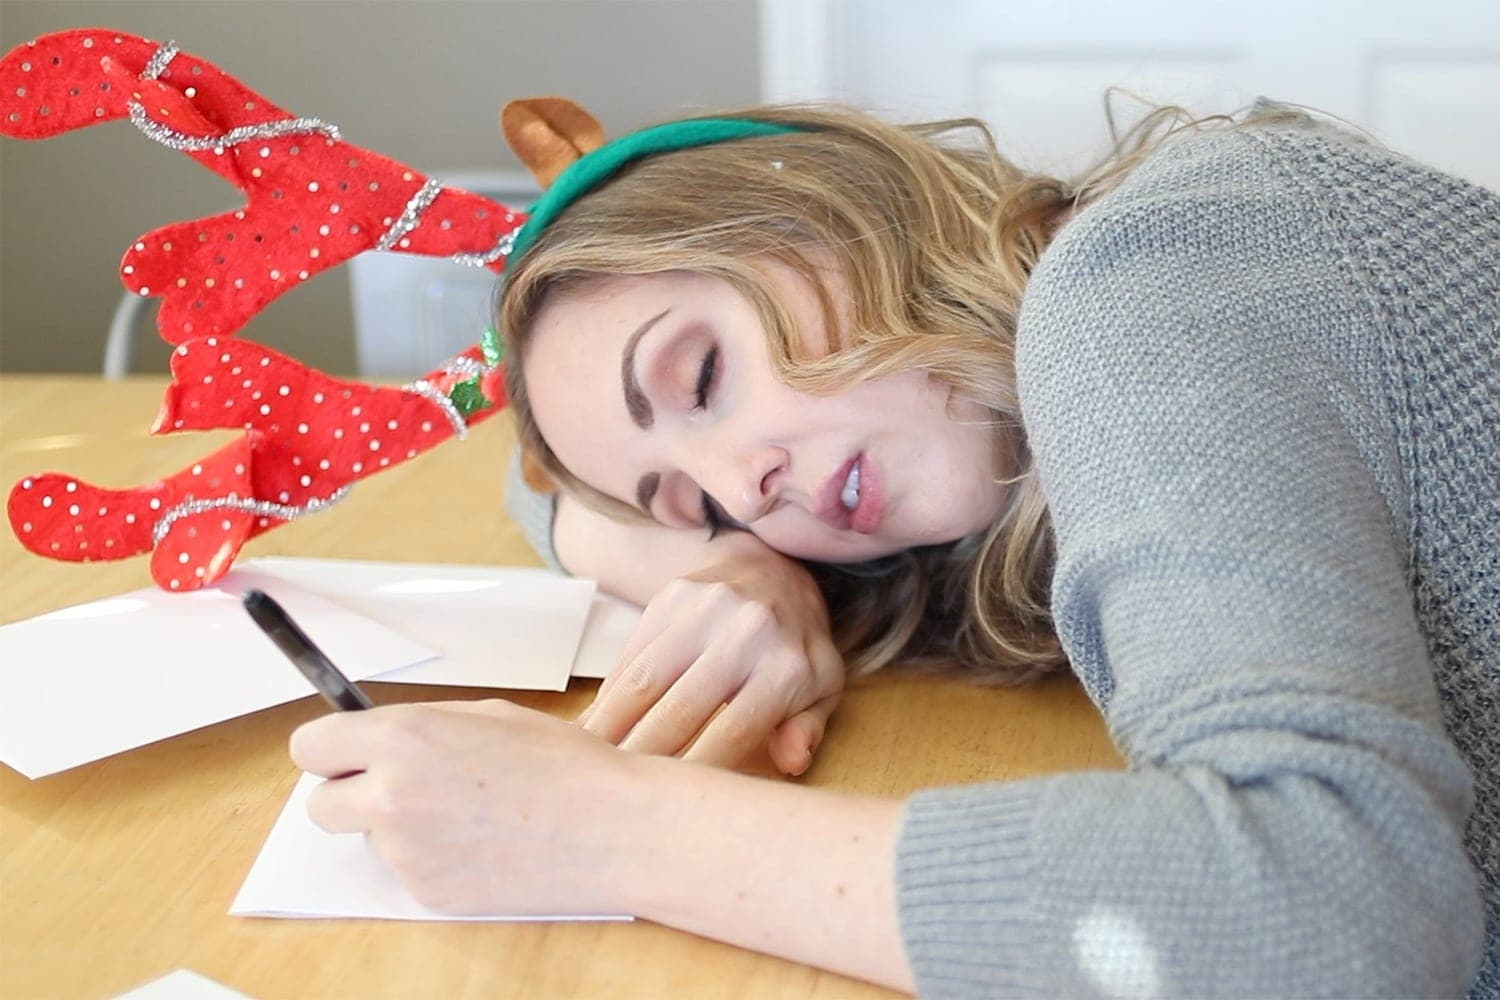 falling asleep while addressing Christmas cards - holiday bloopers by Houston blogger Meg O. on the Go